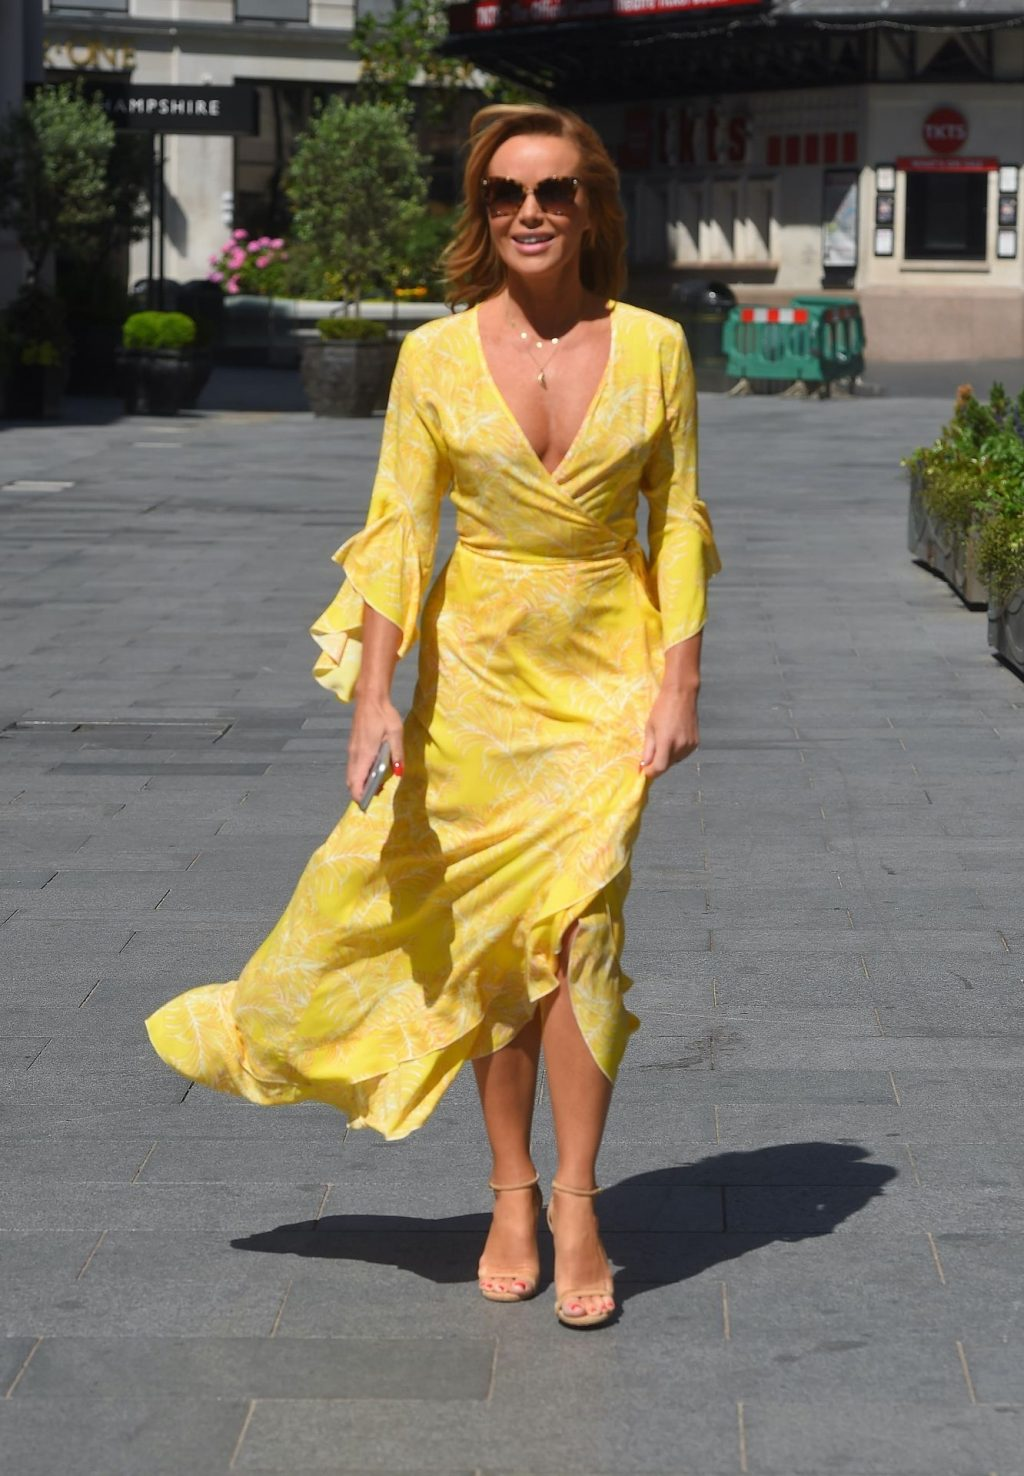 Amanda Holden Displays Her Pokies in a Yellow Dress (67 Photos)